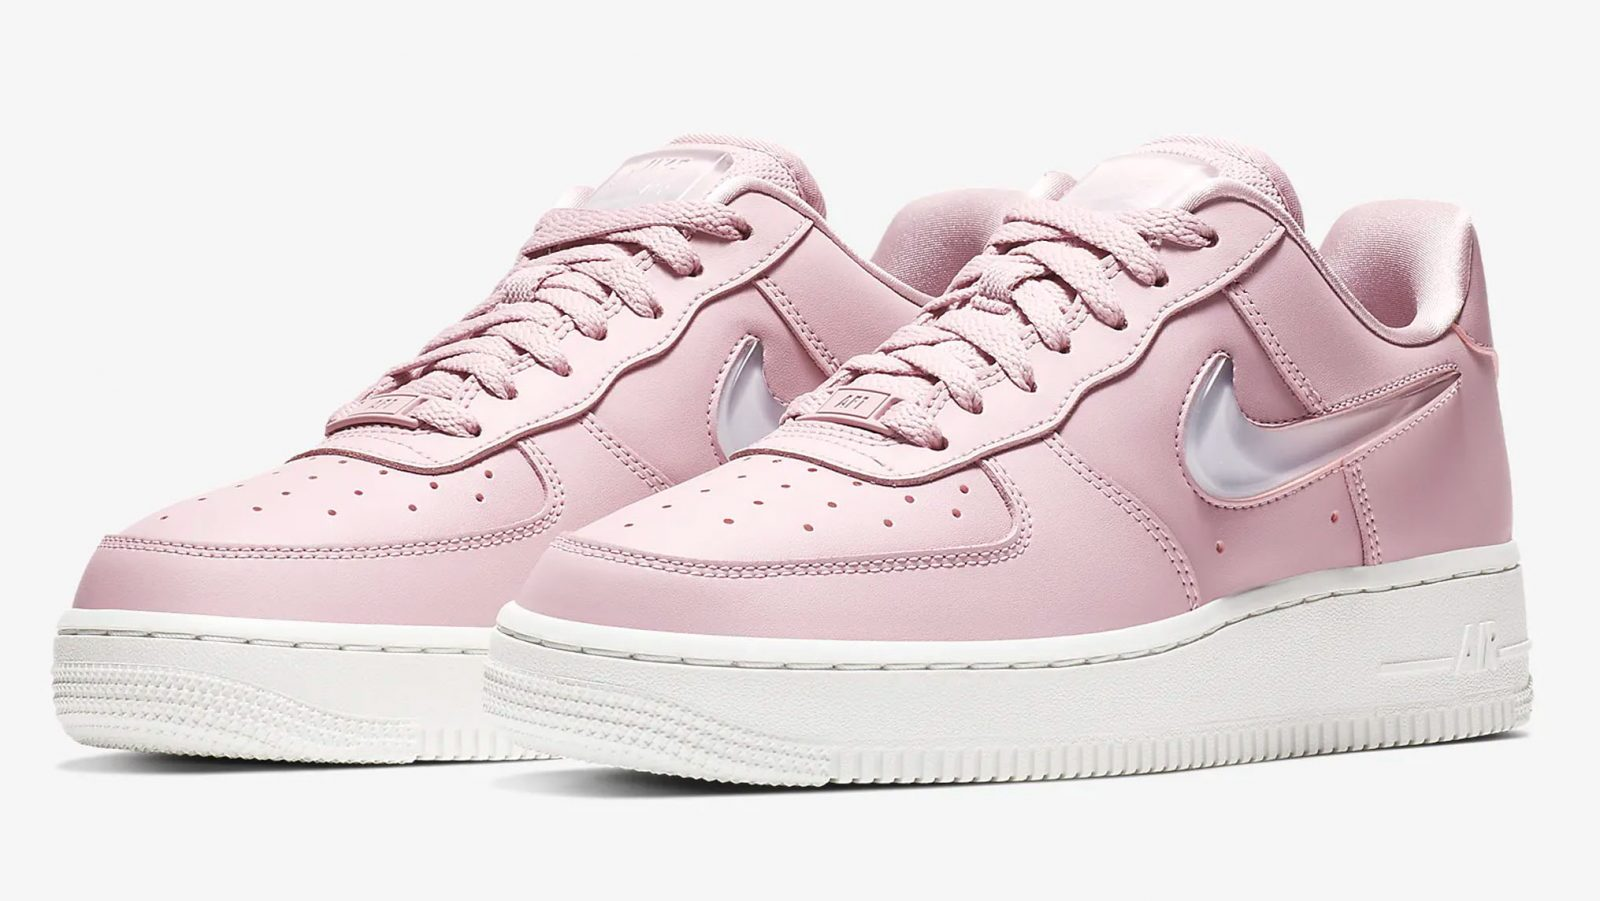 Nike Air Force 1 '07 SE Premium Plum Chalk | AH6827-500